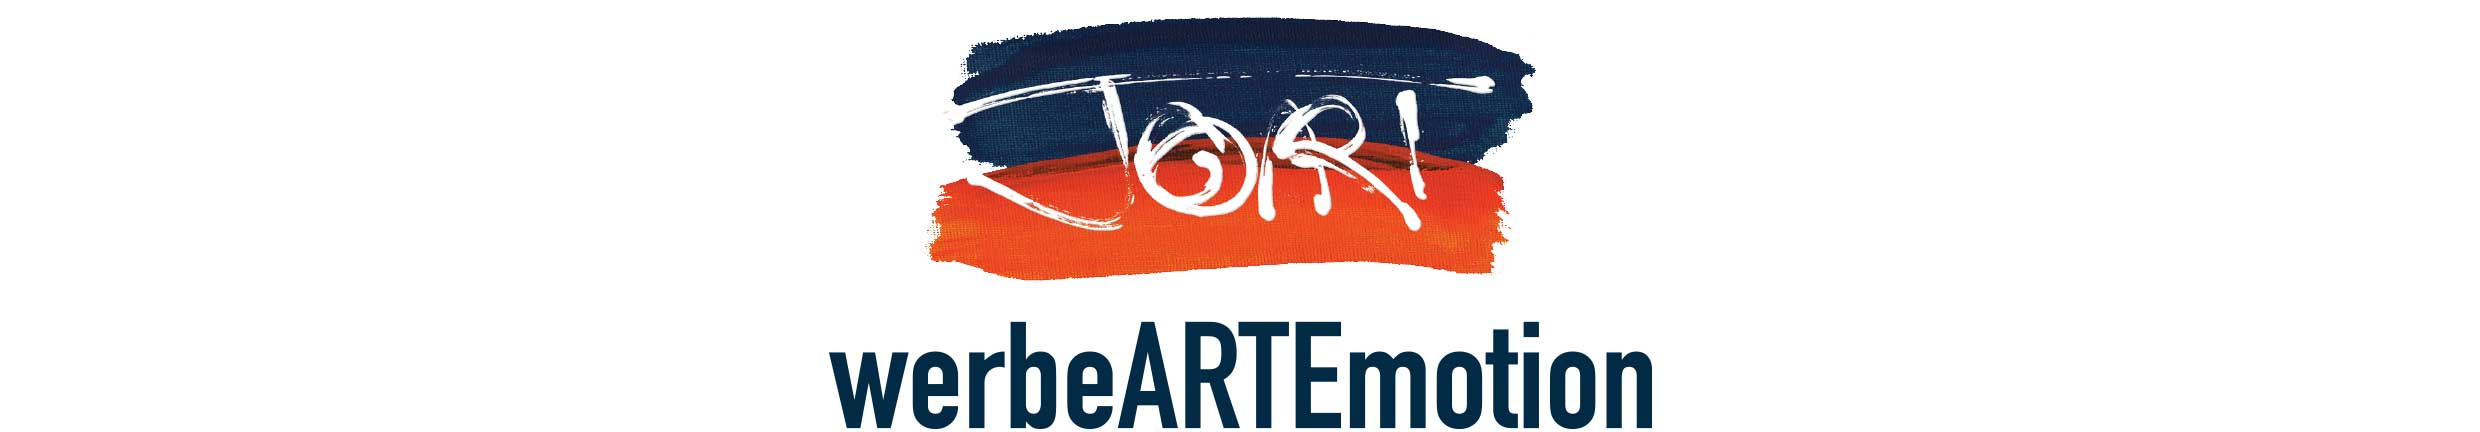 JOART Werbe ART Emotion